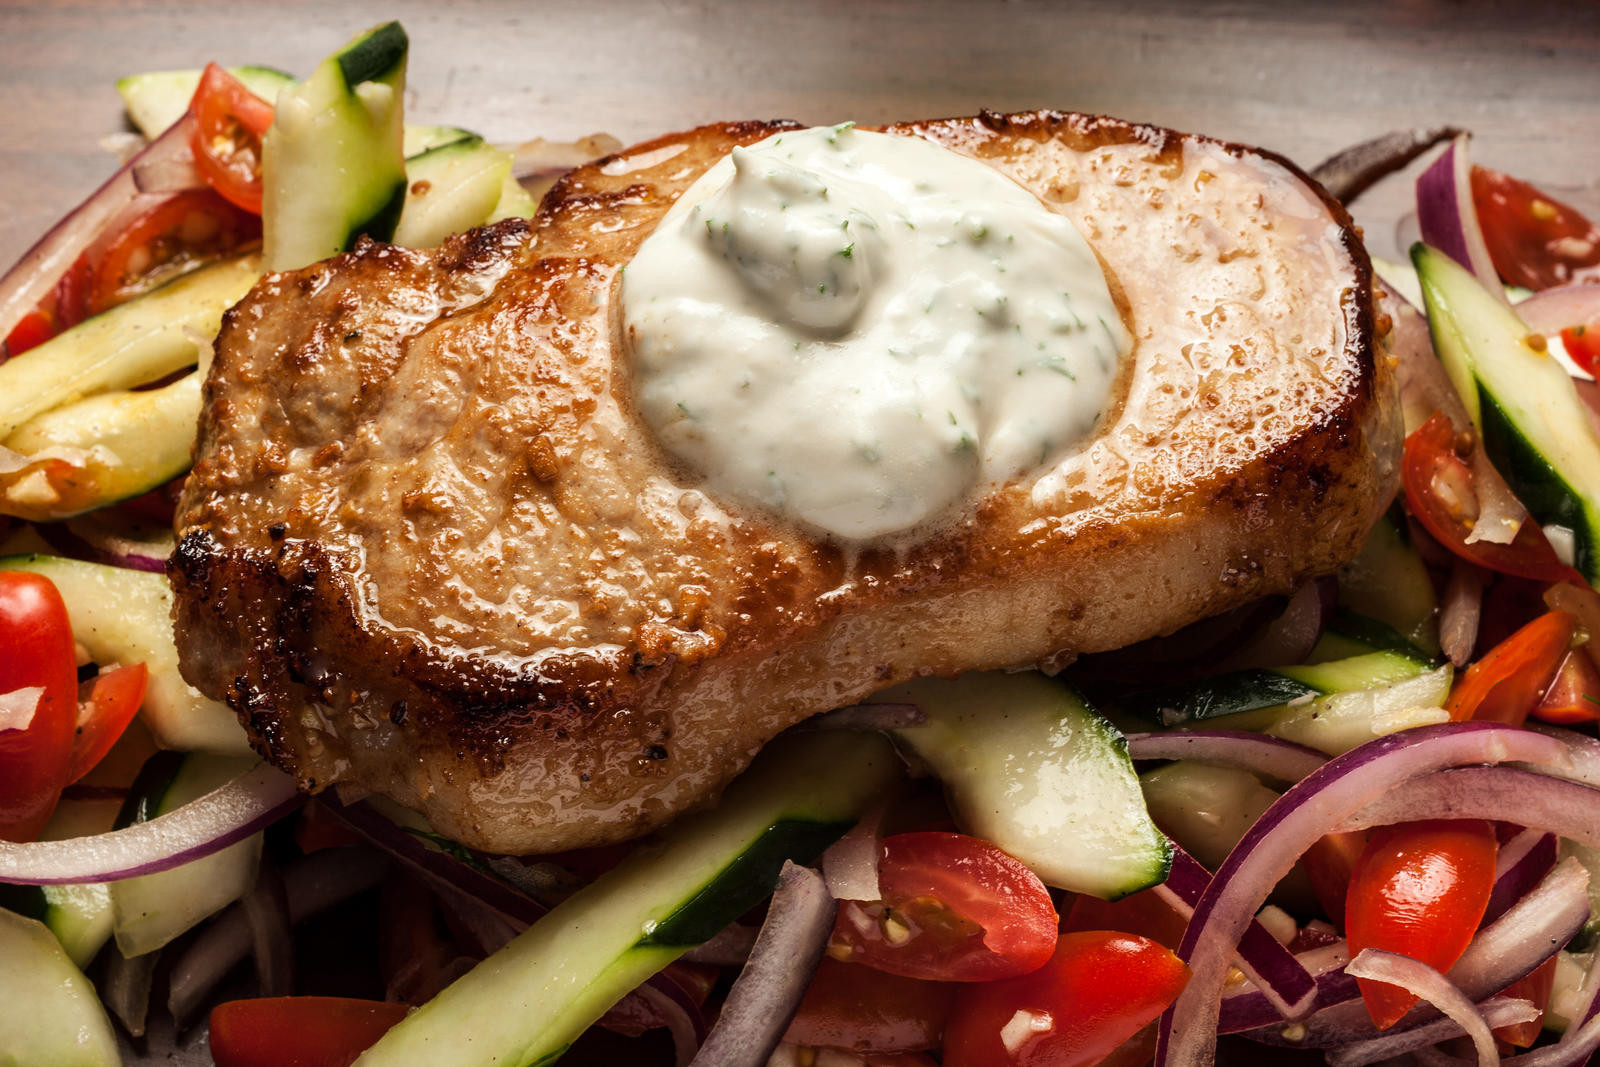 What To Do With Pork Chops  How to Pan Fry Pork Chops Chowhound